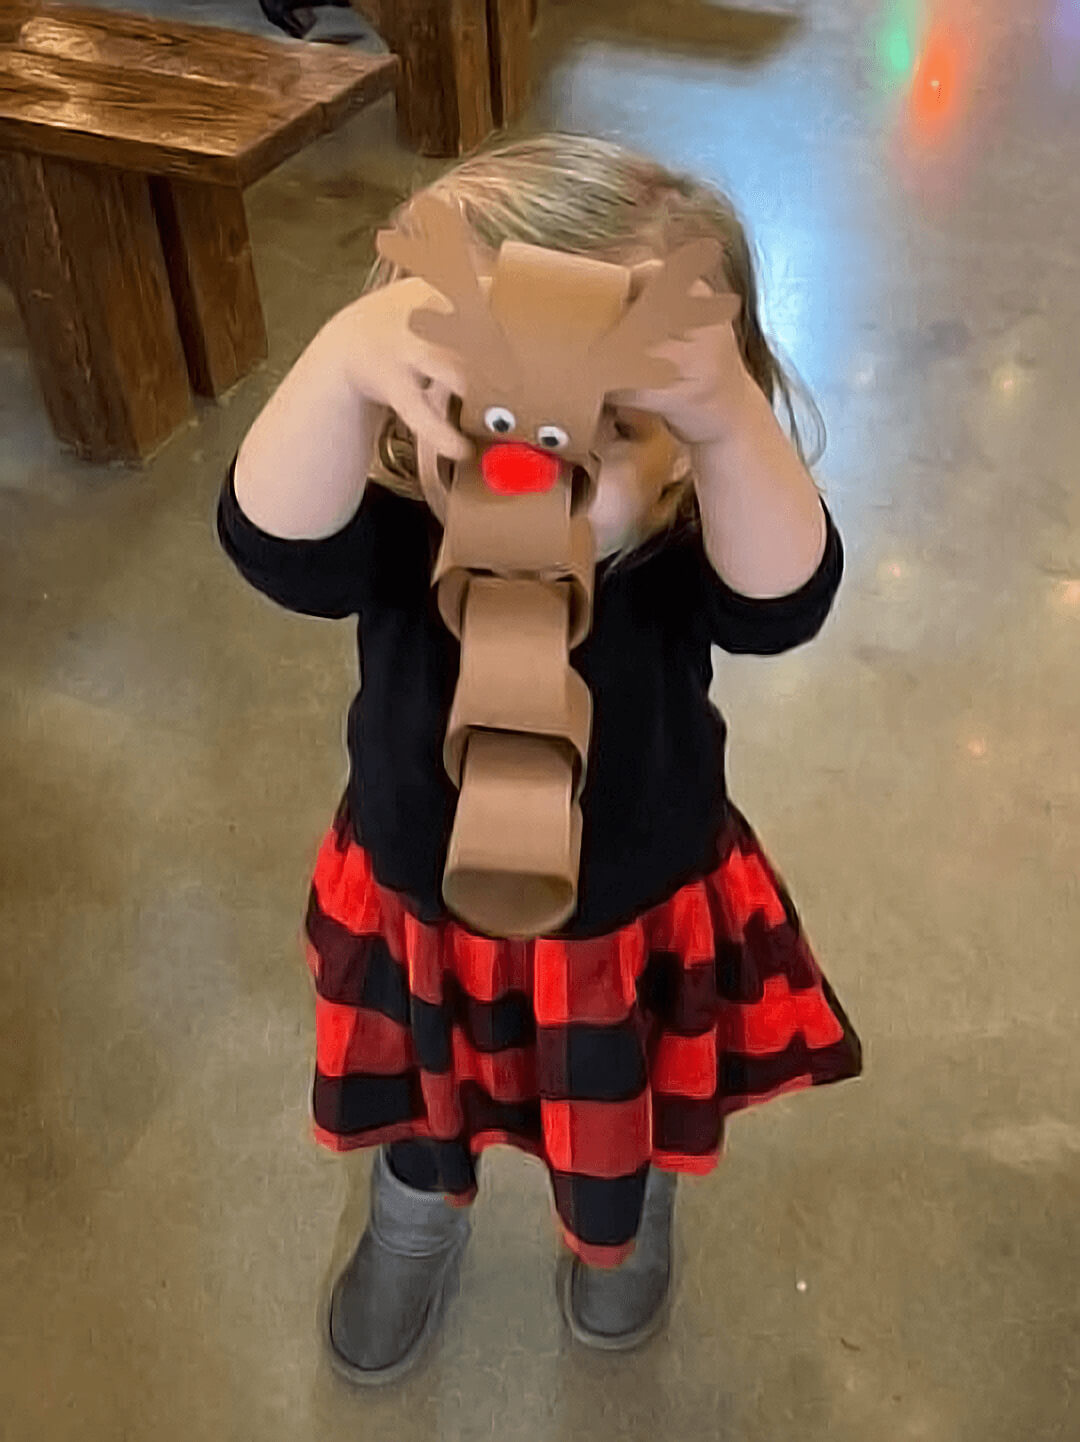 A toddler proudly holding up a simple reindeer arts and crafts project made from construction paper